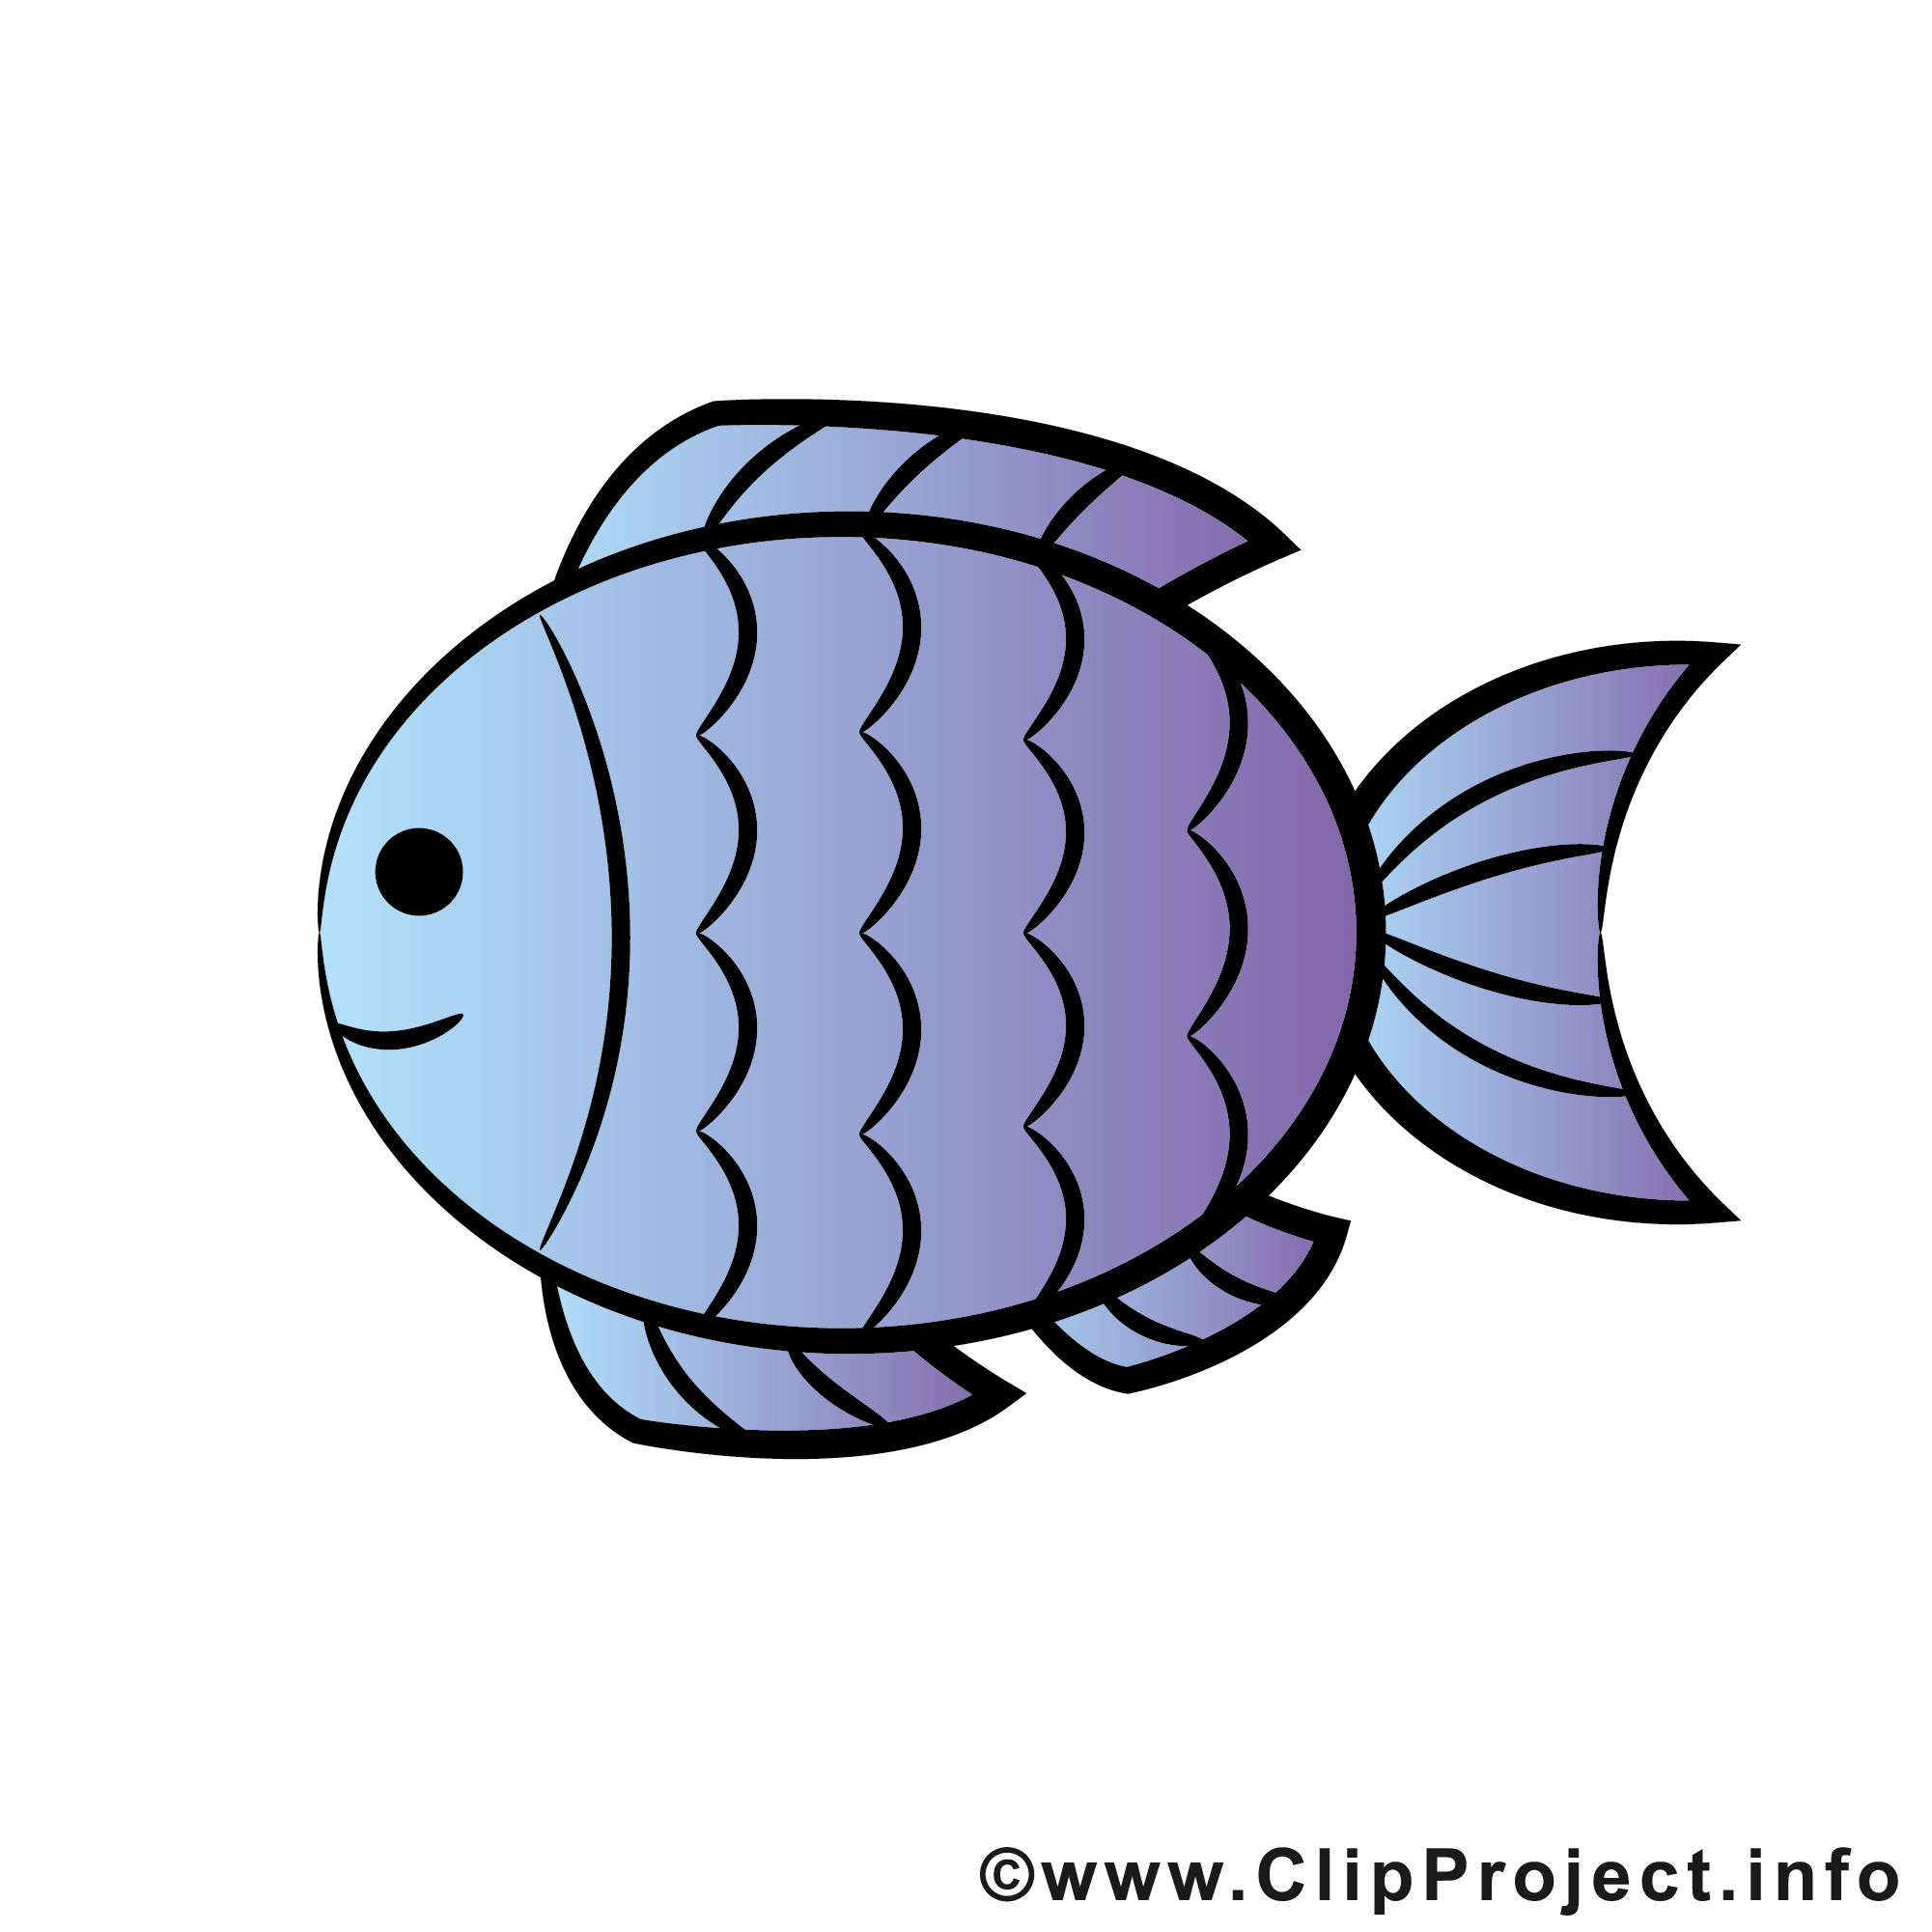 Einladung clipart schwarz wei banner transparent download Kommunion Einladungskarten mit Cliparts gestalten - Fisch Cartoon banner transparent download